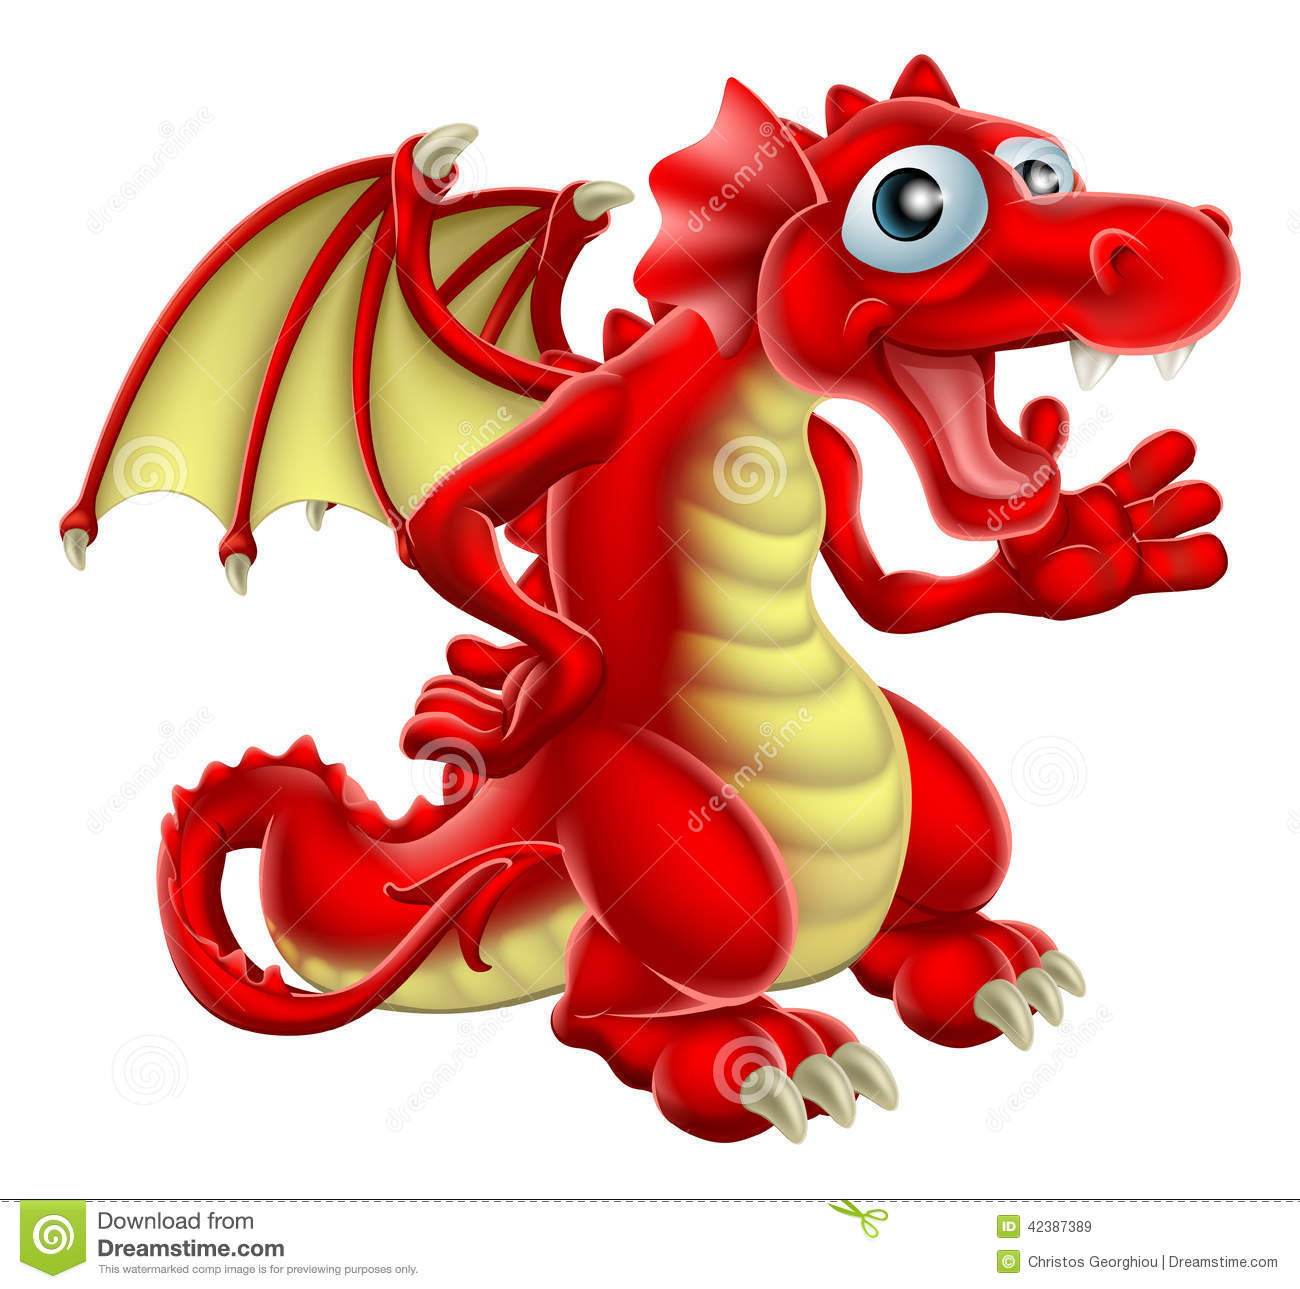 Cartoon illustration of a friendly Red Dragon smiling and waving.